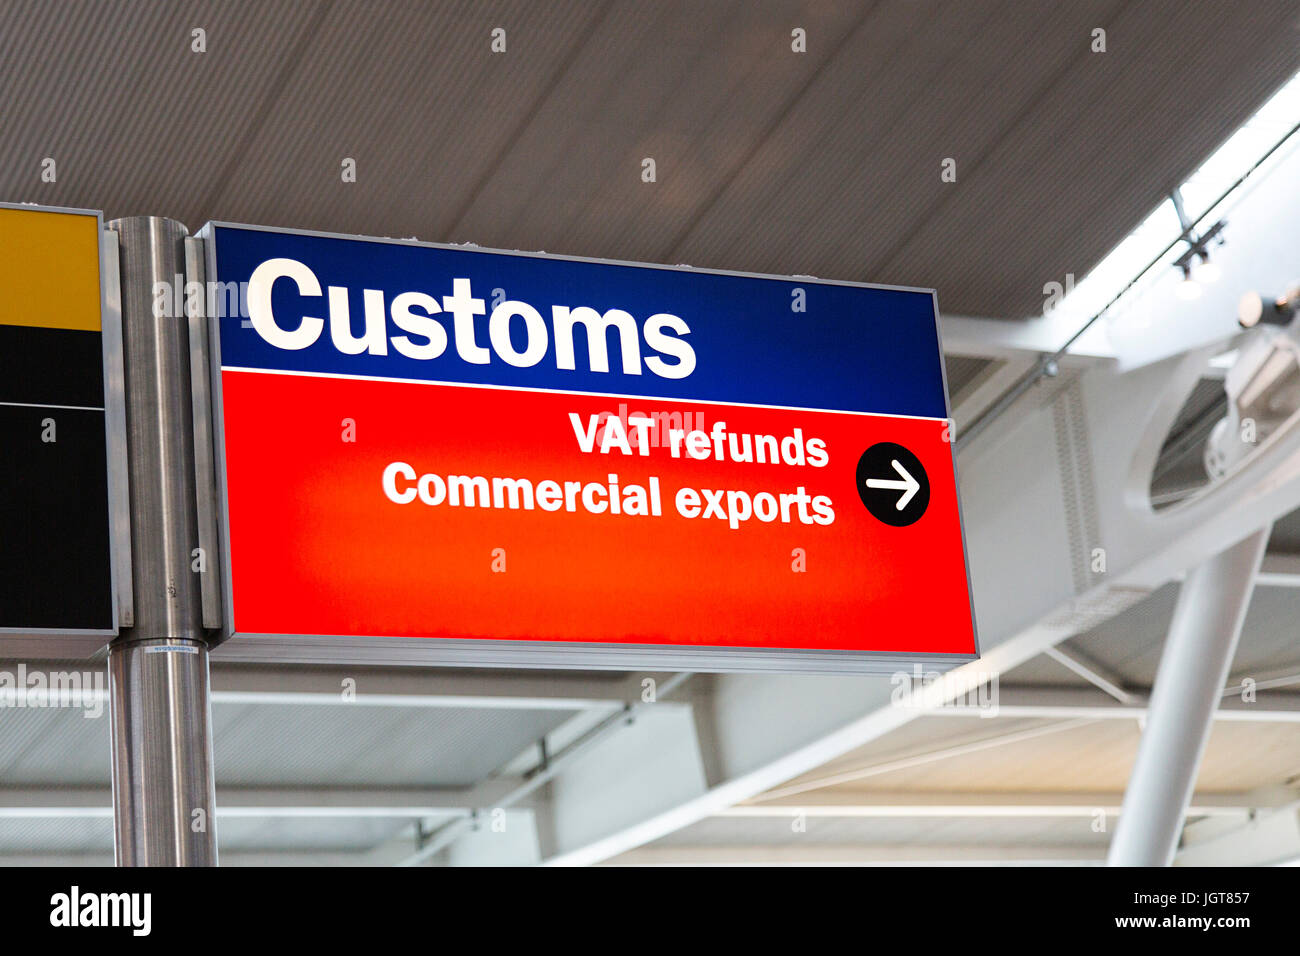 Customs and VAT Refund Sign Heathrowcrime Airport - Stock Image